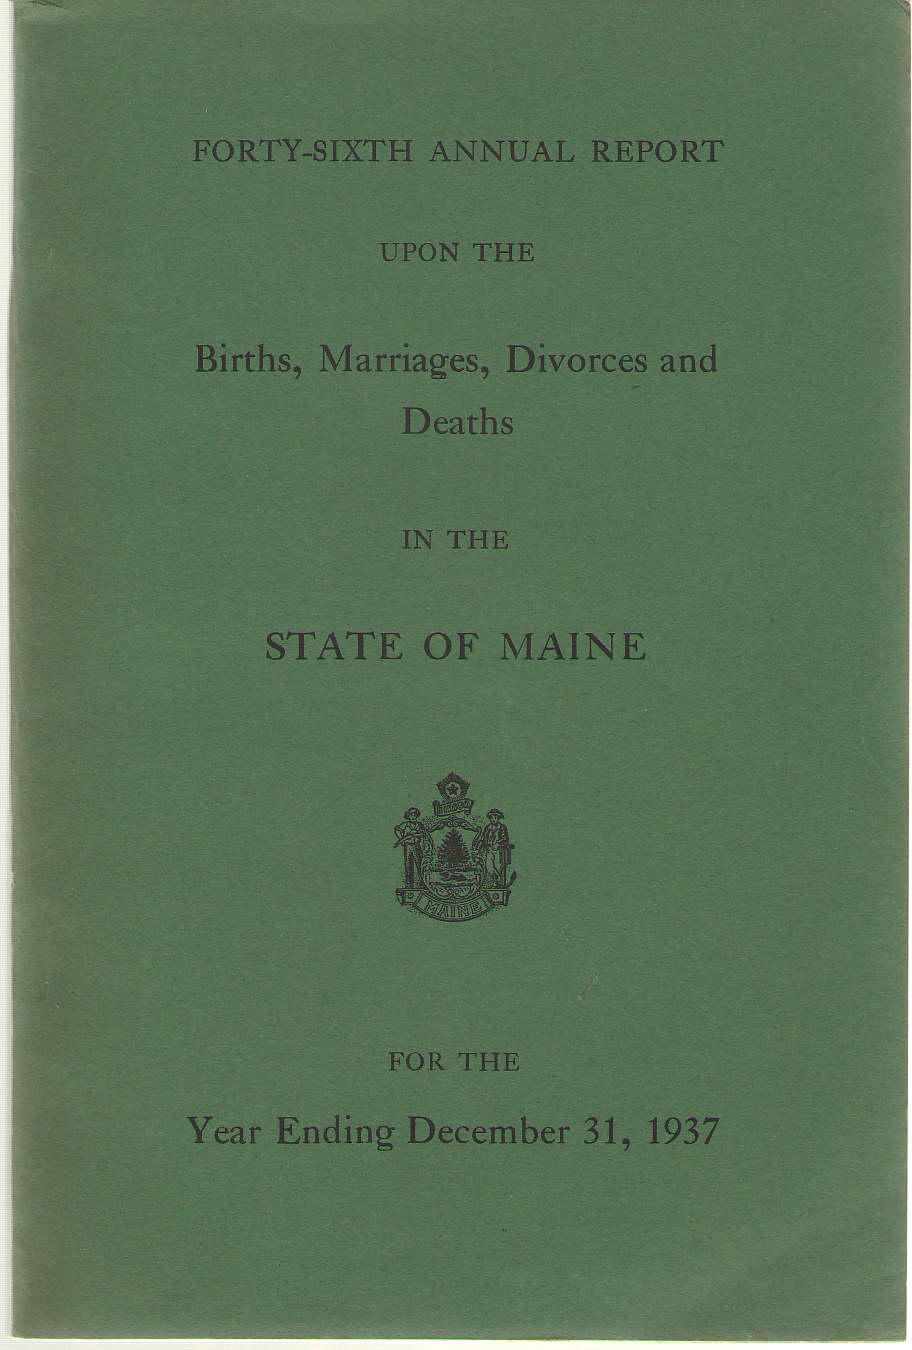 Forty-sixth Annual Report On Births, Marriages, Divorces, And Deaths, In The State Of Maine For The Year Ending December 31, 1937, No Author Noted